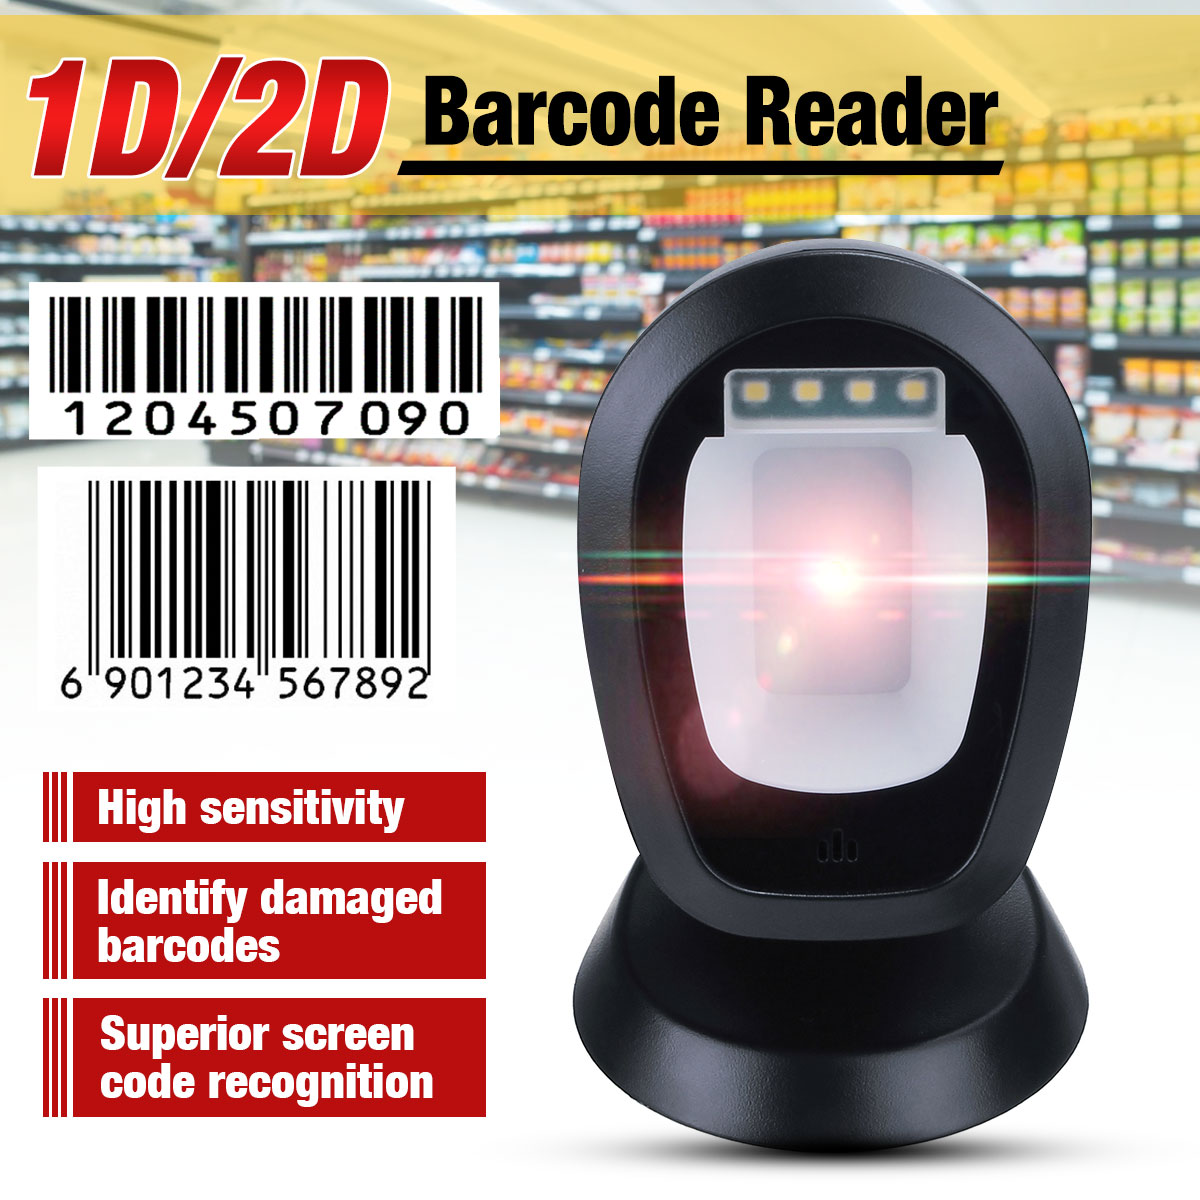 USB Automatic Barcode Scanner Handsfree 1D 2D Barcode Scanner 360 Degrees Rorating Scanning Platform With USB Interface